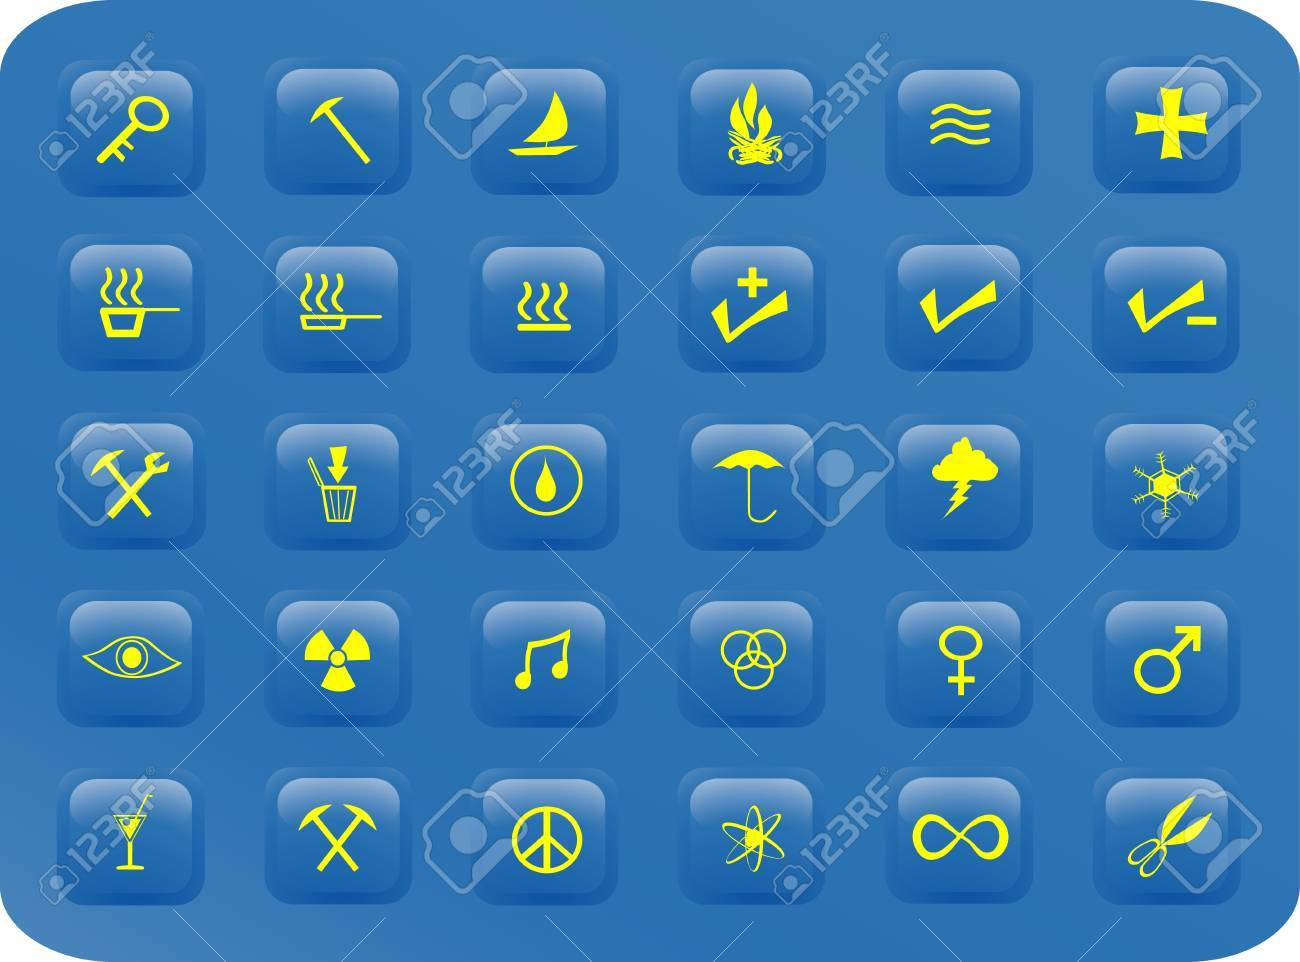 blue and yellow web buttons with various signs and symbols on them Stock Vector - 1606503